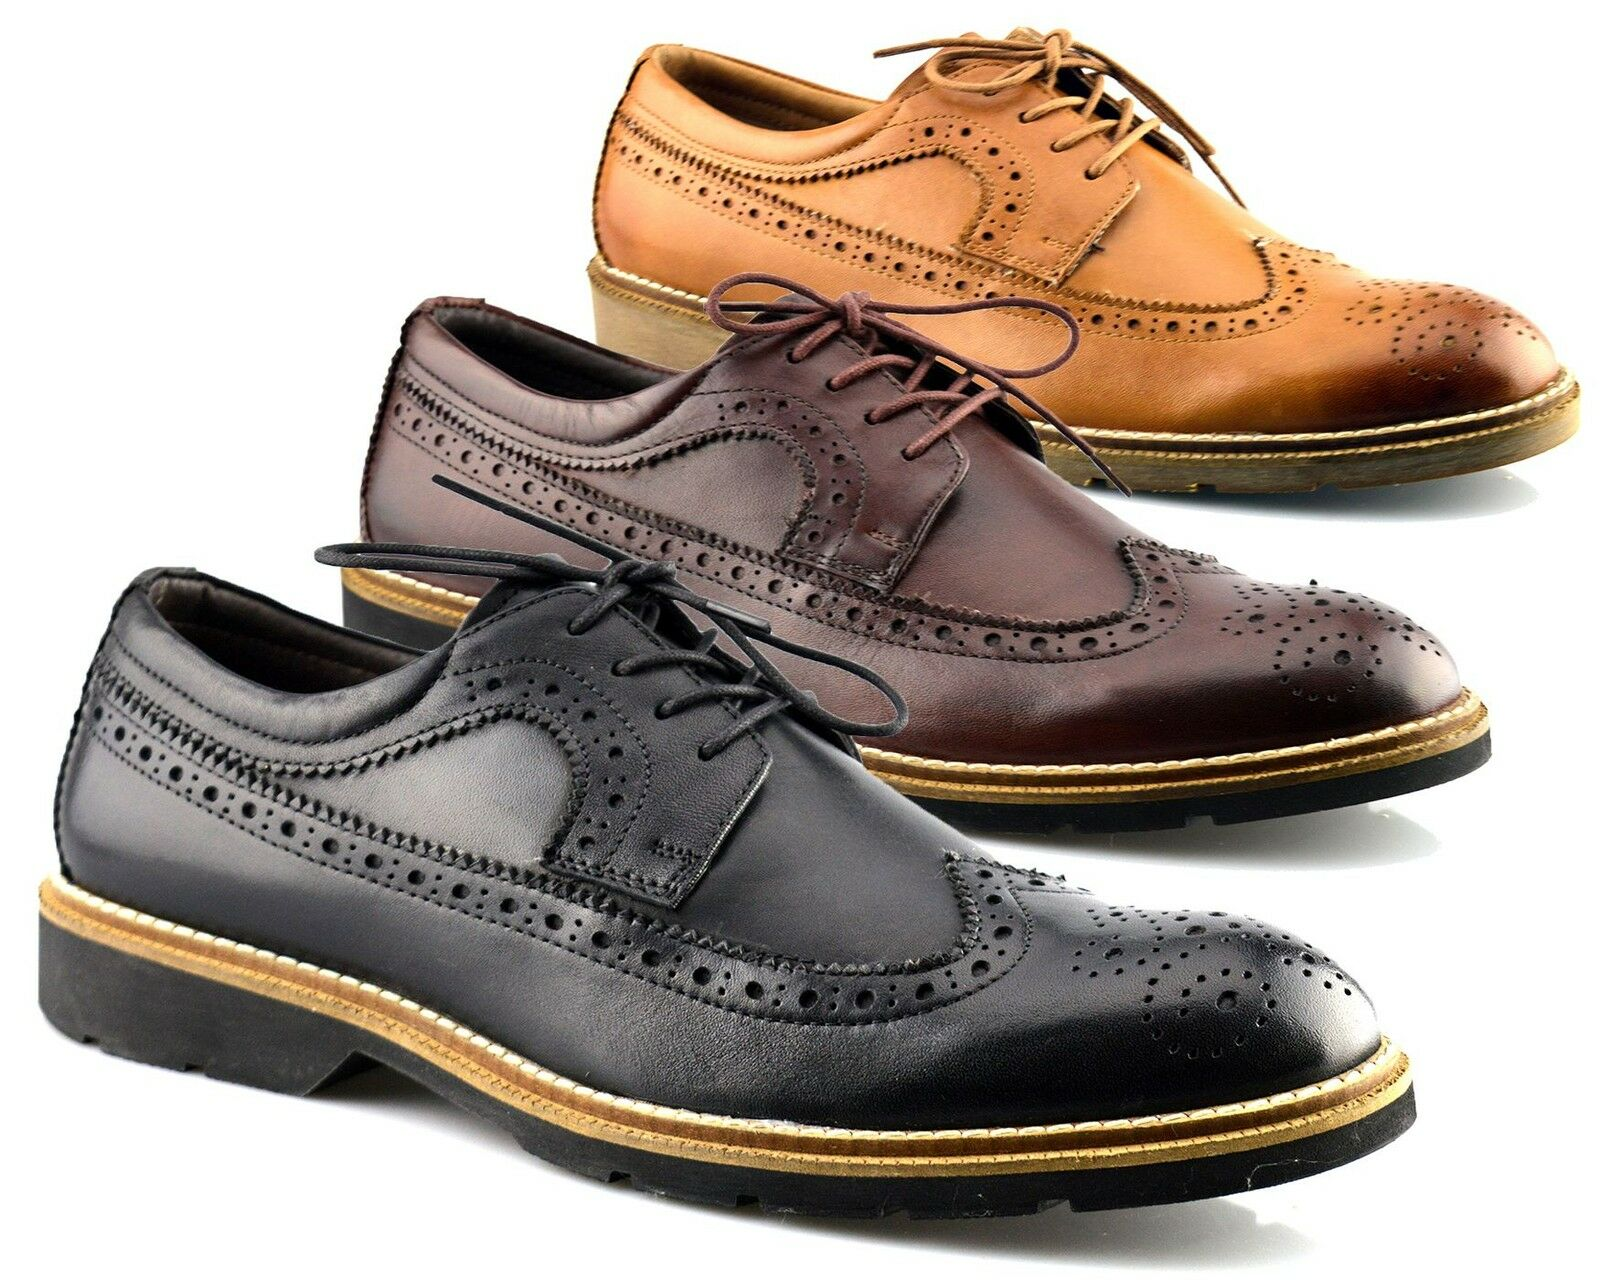 Mens shoes Leather Flexible Memory Foam Formal Lace Up Brogues Dress Size